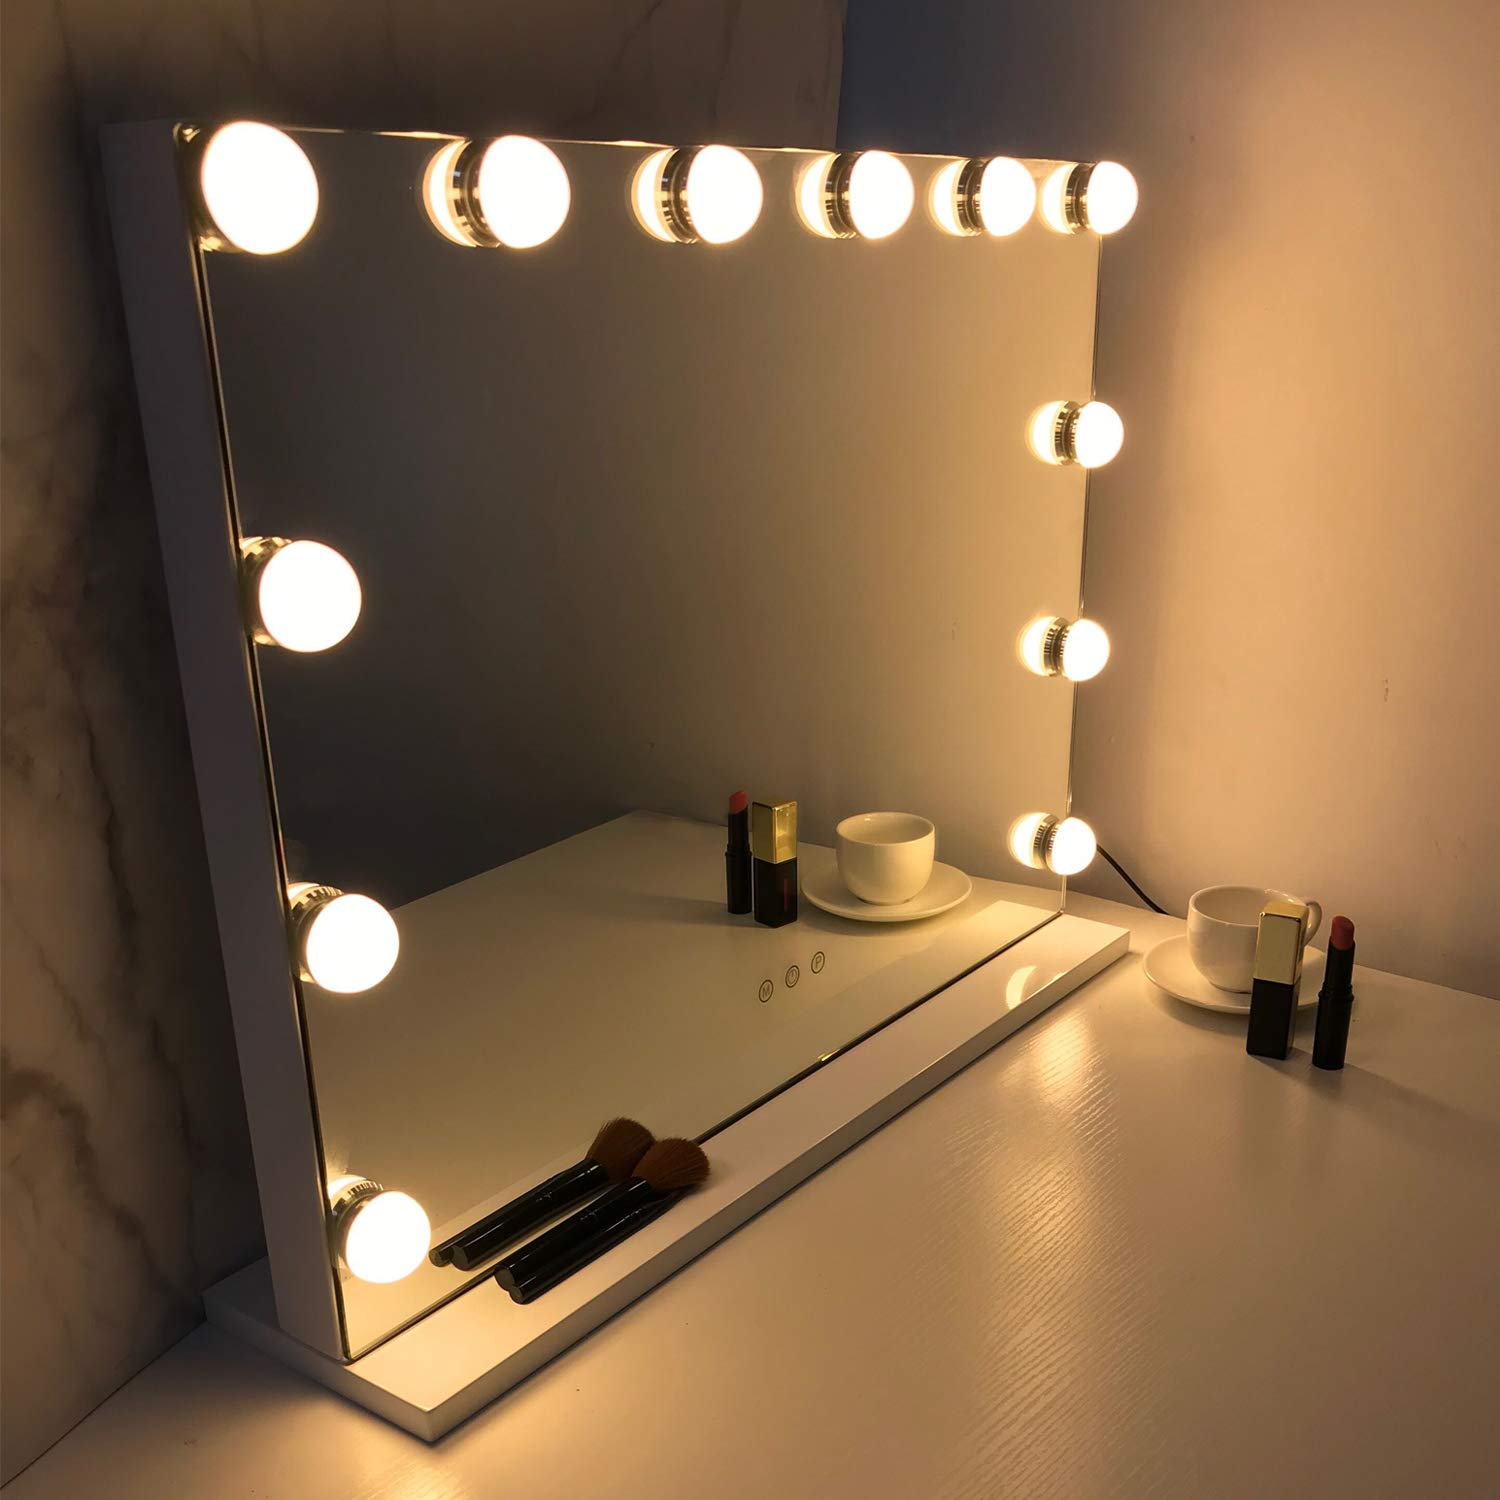 HOMPEN Makeup Vanity Mirror with lights, Hollywood Mirror with Dimmable LED Bulbs, Smart Touch Switch and USB Port